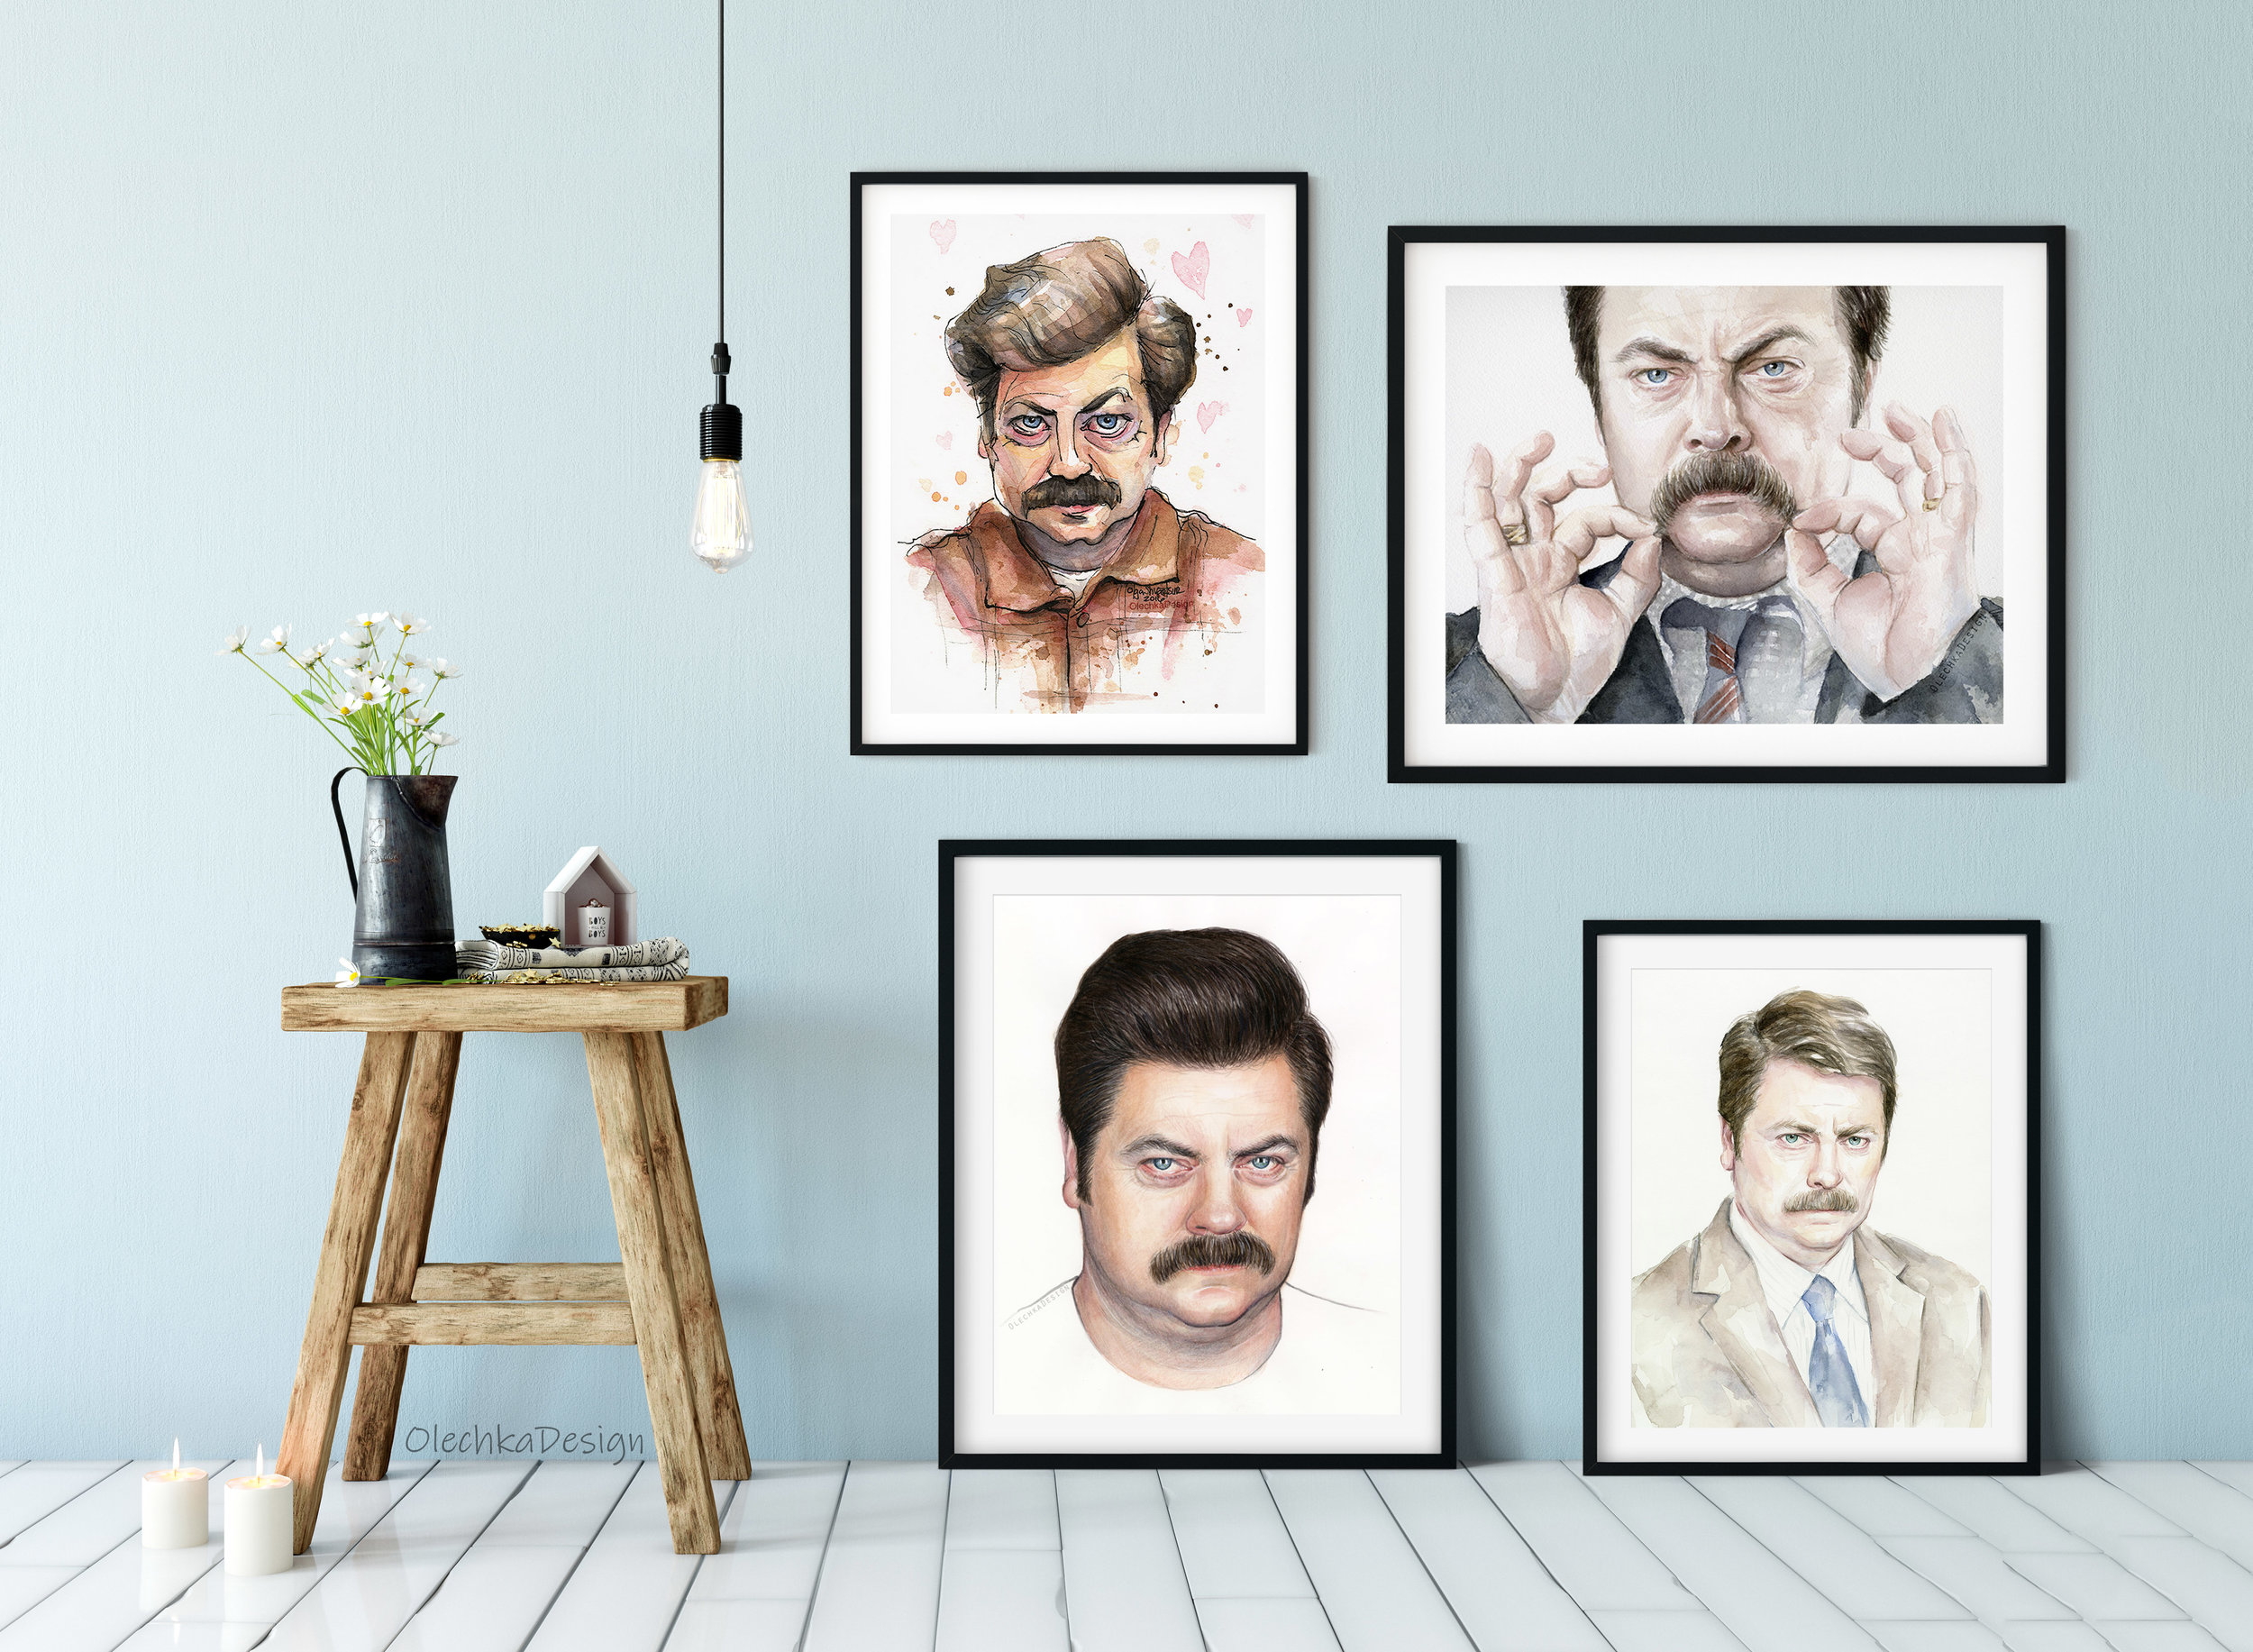 ron-swanson-art-parks-and-rec.jpg